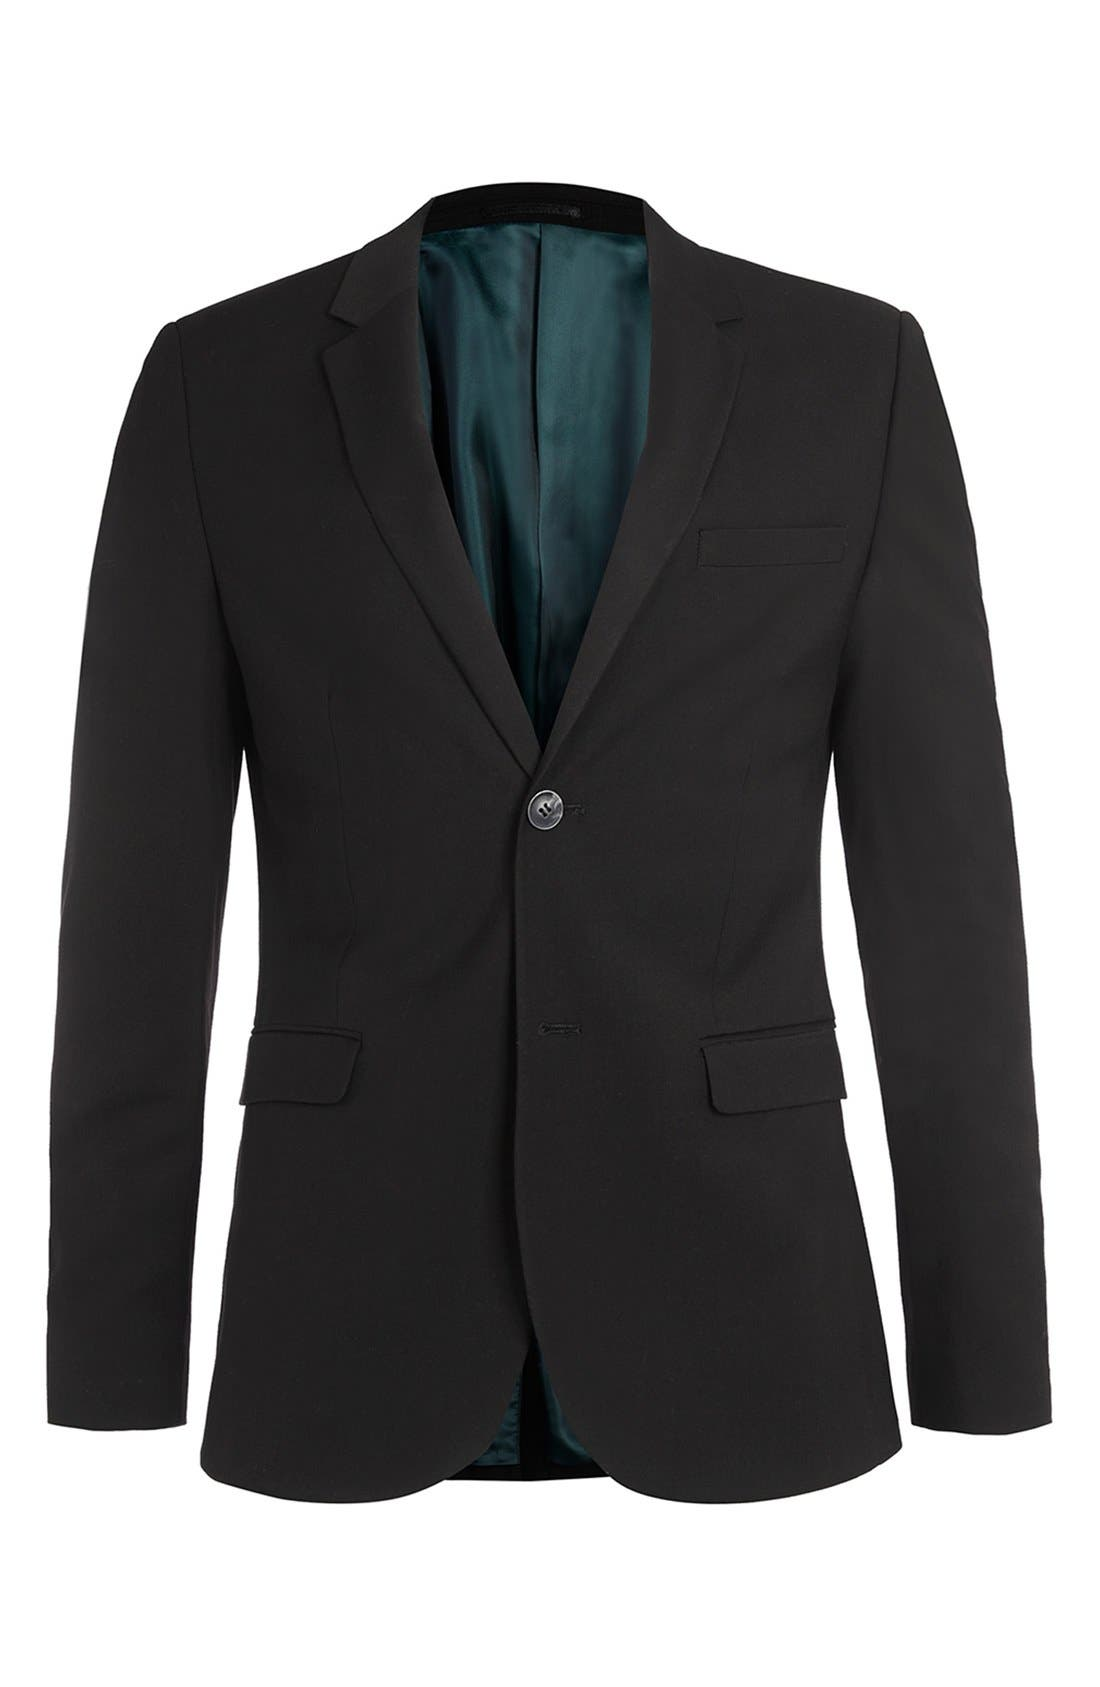 Ultra Skinny Black Suit Jacket,                             Alternate thumbnail 11, color,                             BLACK